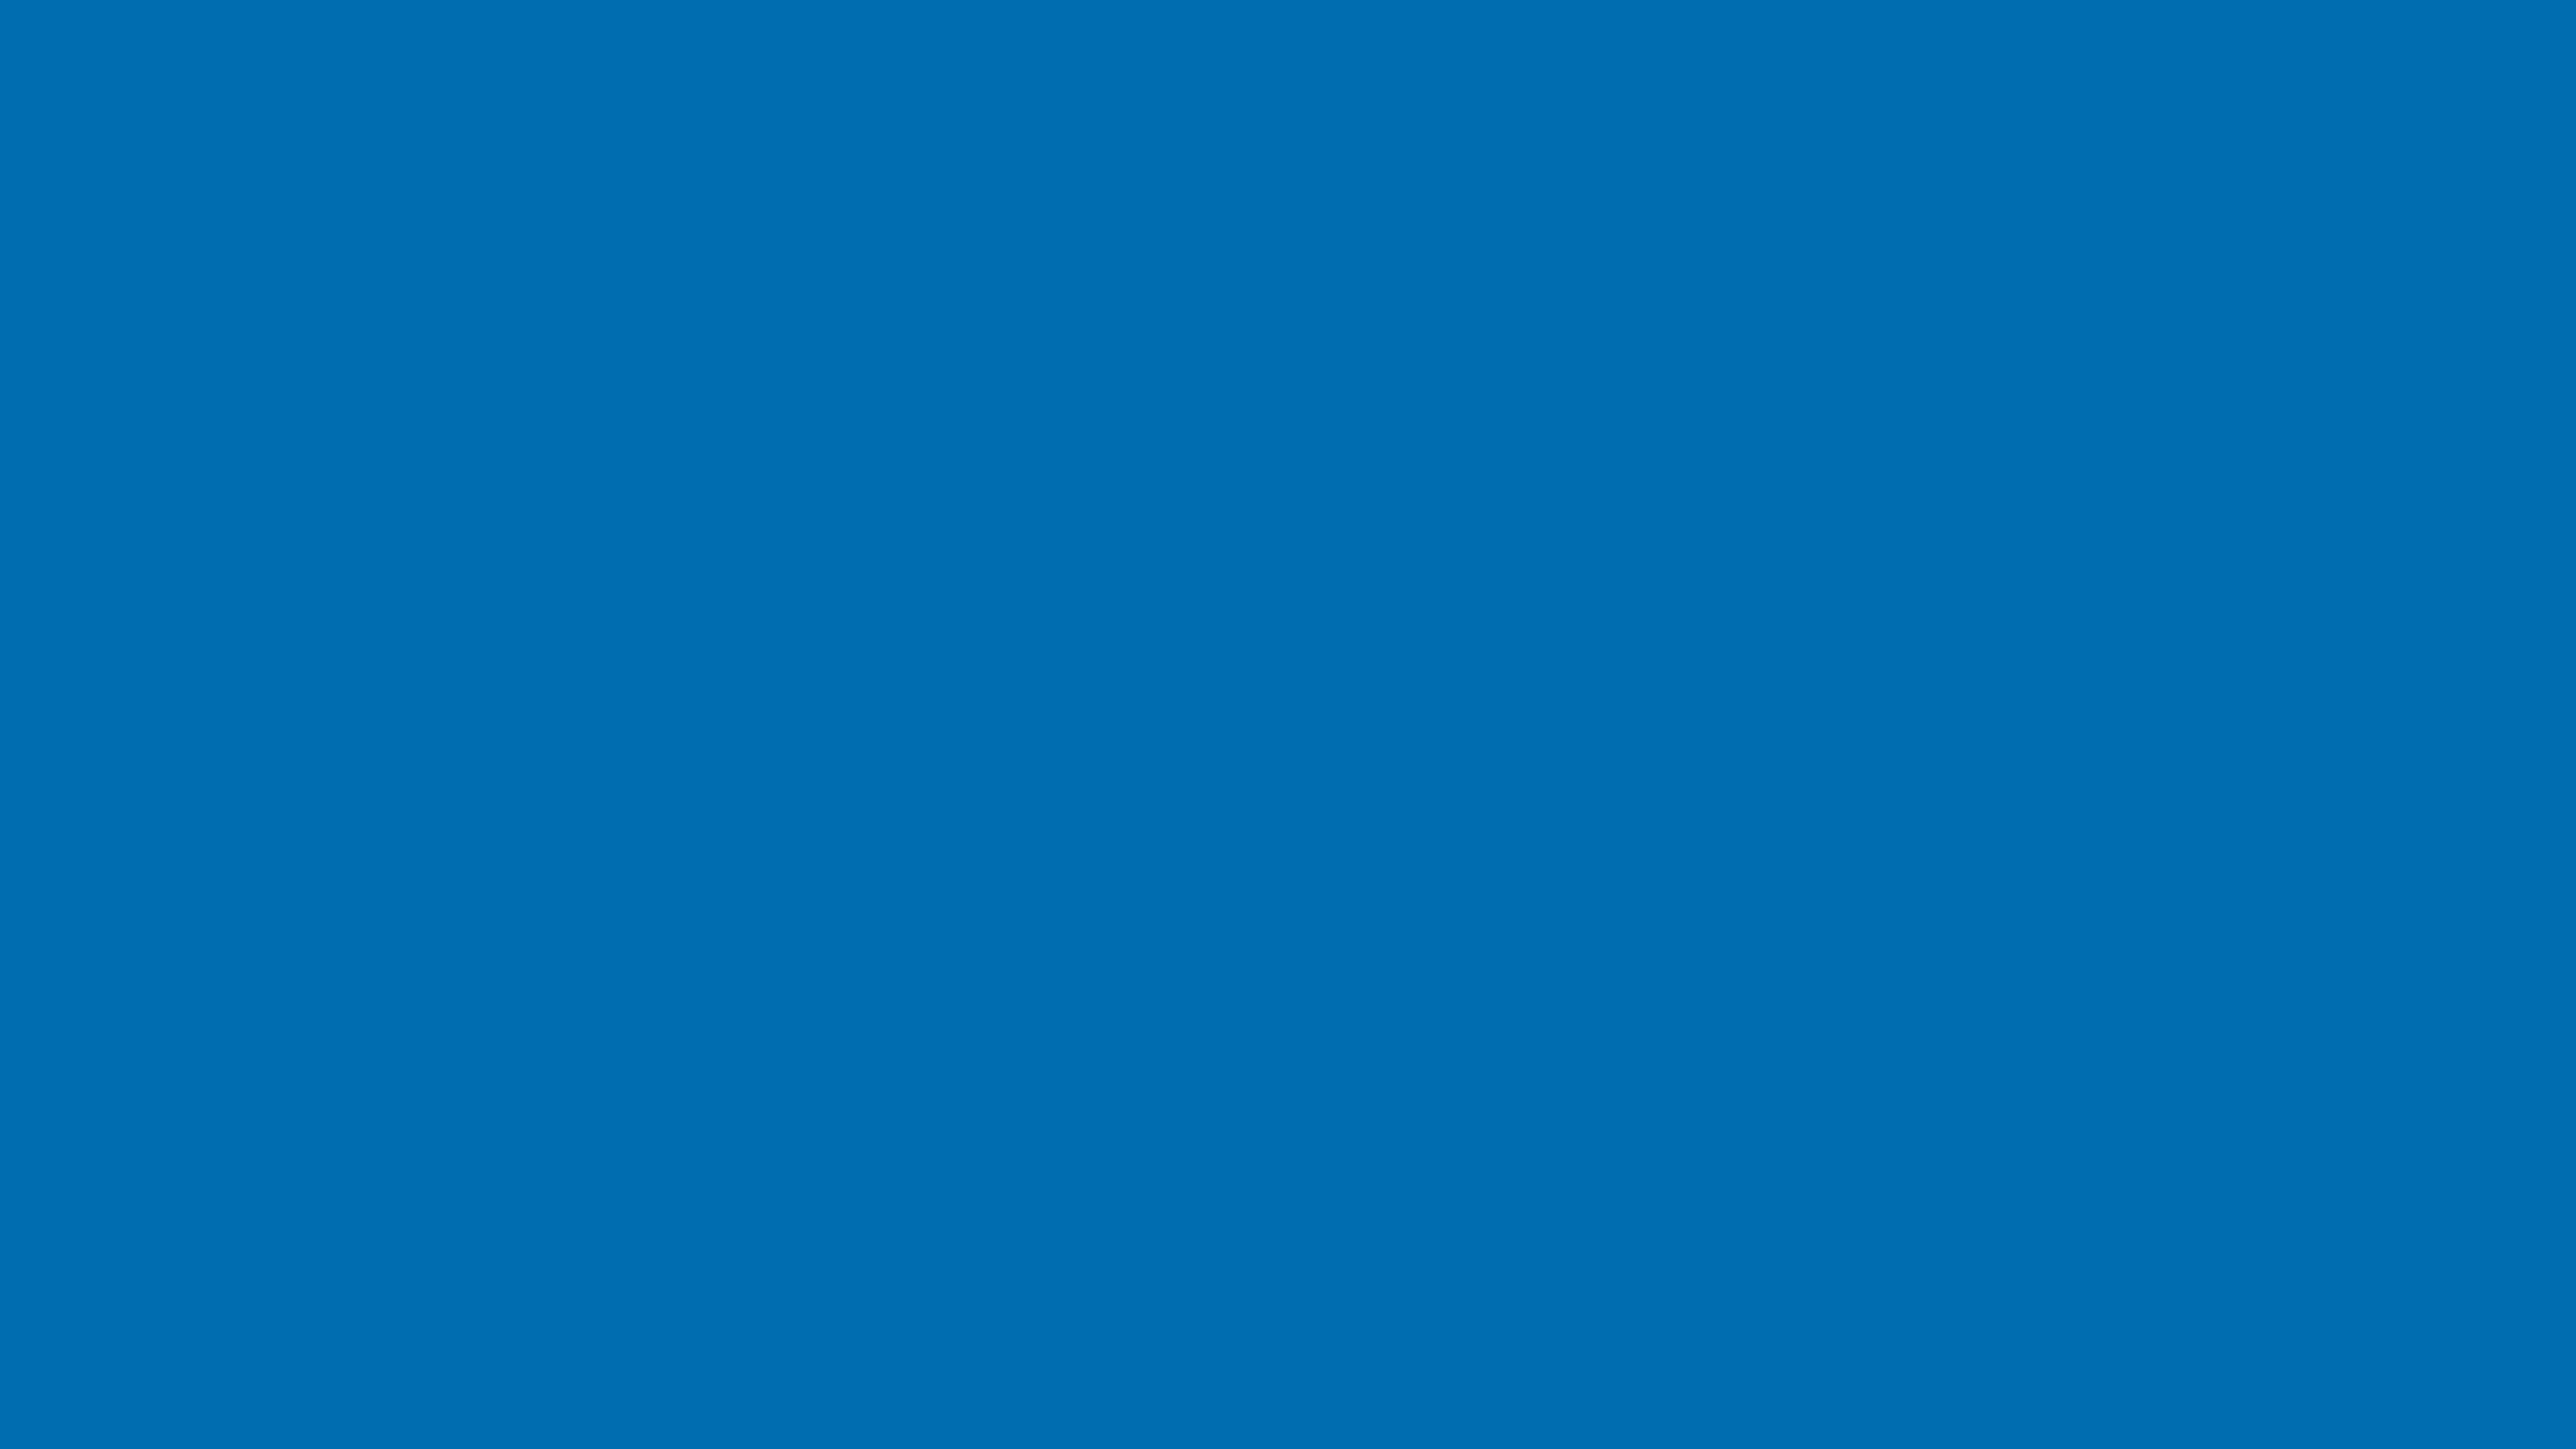 7680x4320 Honolulu Blue Solid Color Background